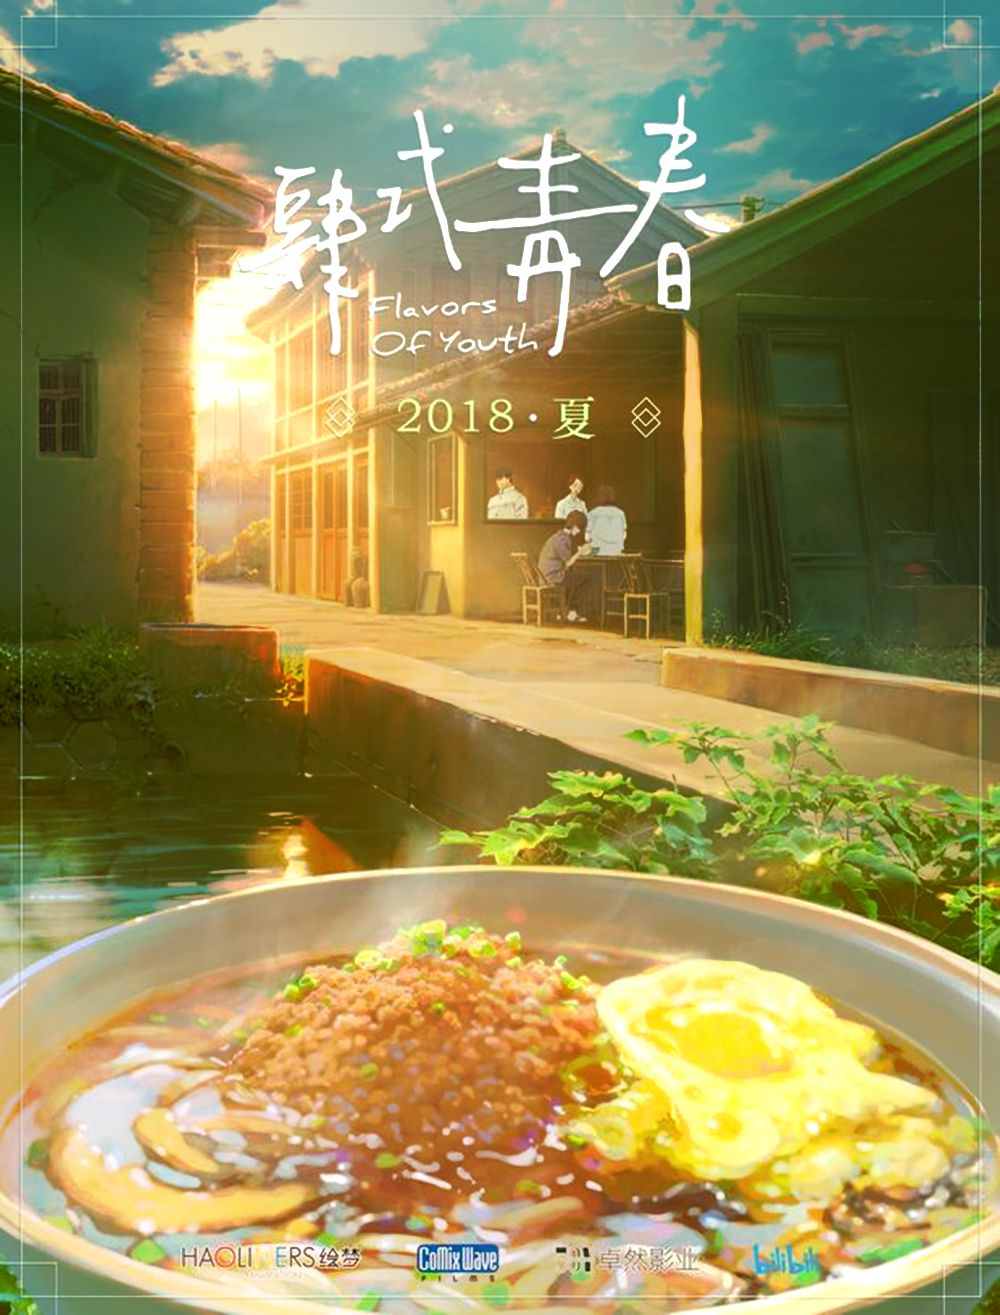 Flavors Of Youth Download Or Stream Available Anime Films Anime Reccomendations Flavors